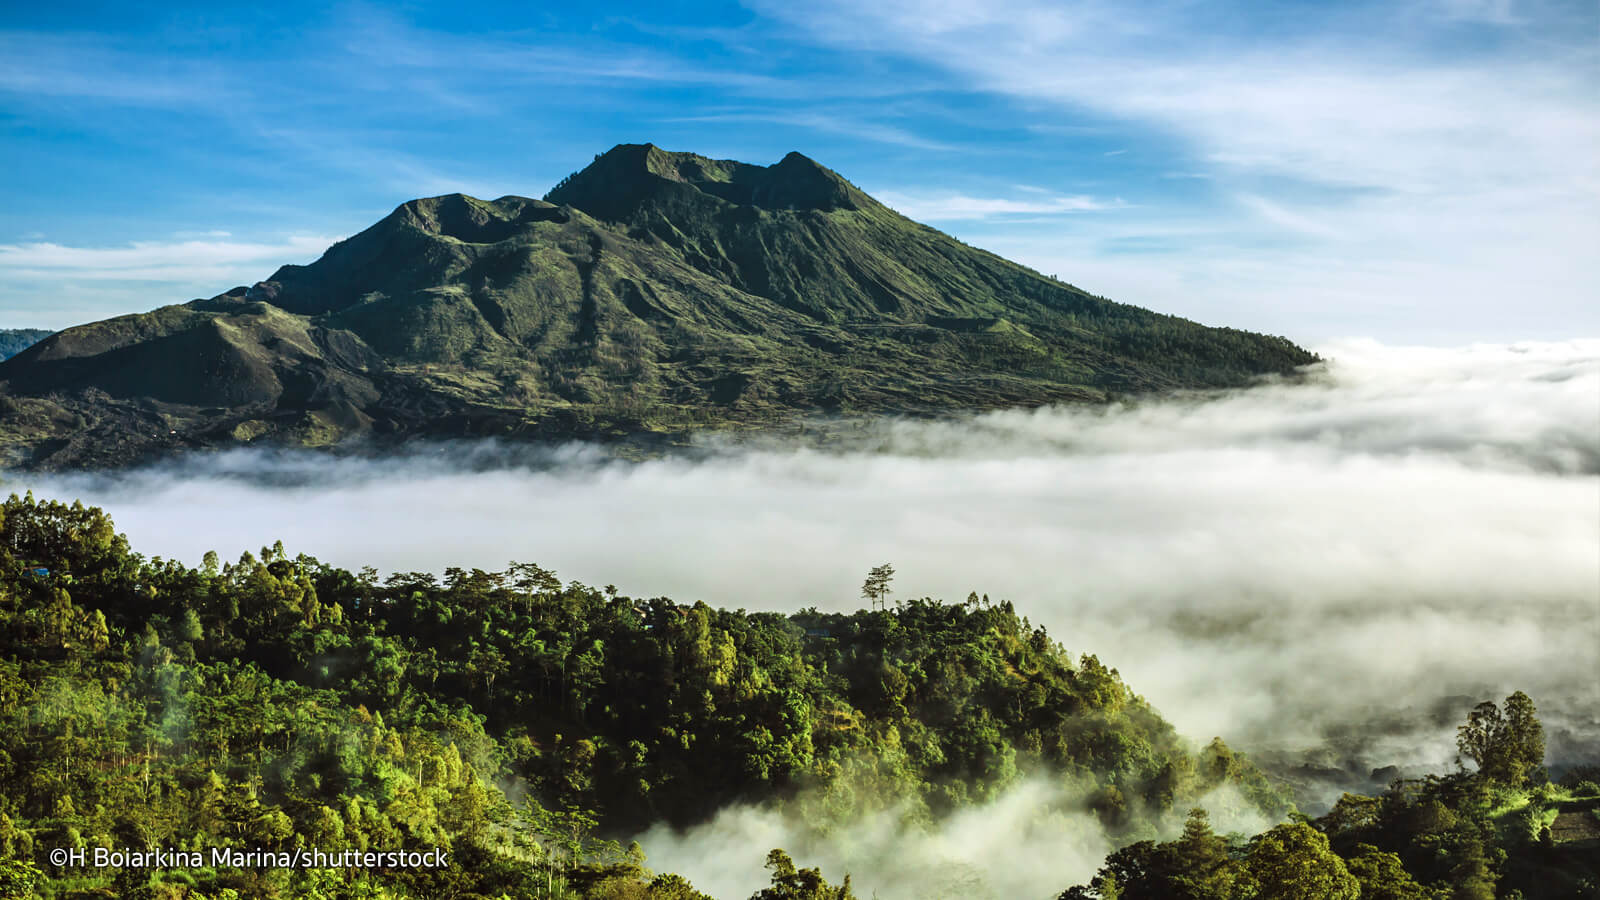 A Bali volcano can be a sightseeing highlight on your next trip to Bali's highland region Read more at: http://www.bali-indonesia.com/attractions/kintamani-volcano.htm?cid=ch:OTH:001